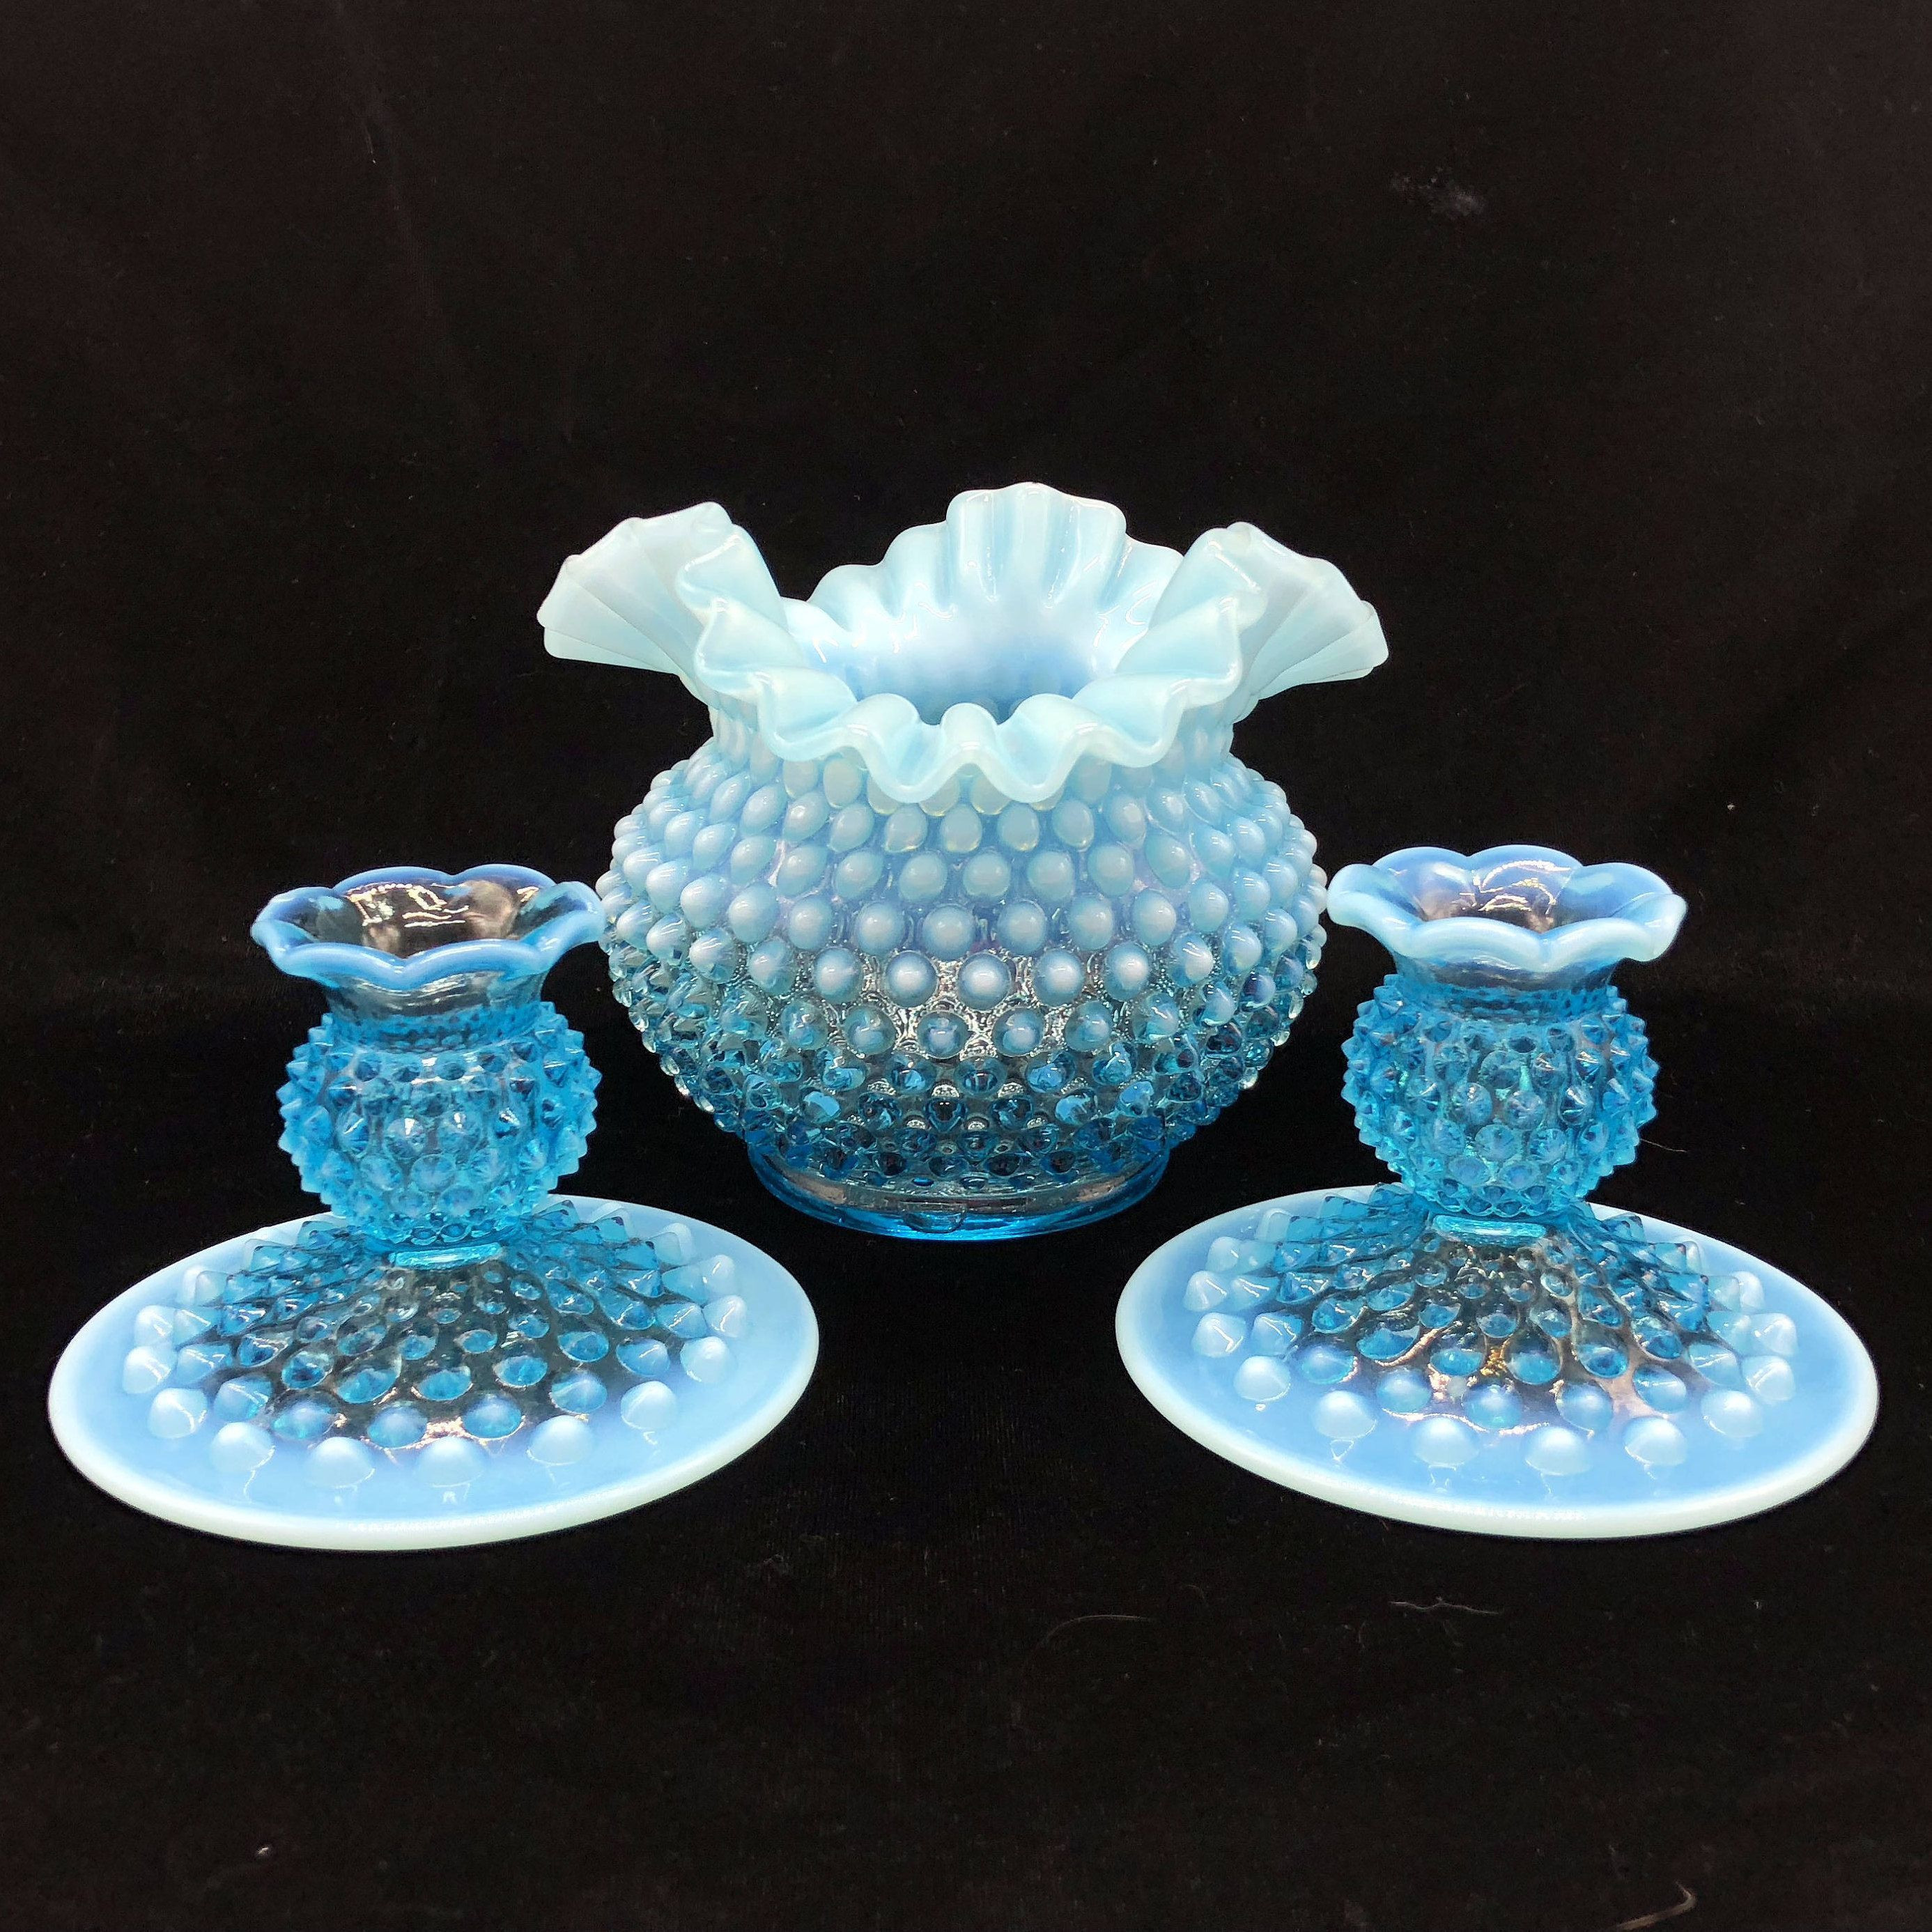 Tiffany and Co Glass Vase Of 37 Fenton Blue Glass Vase the Weekly World Pertaining to Fenton Hobnail Glass Centerpiece Set Blue Opalescent Vase Candle